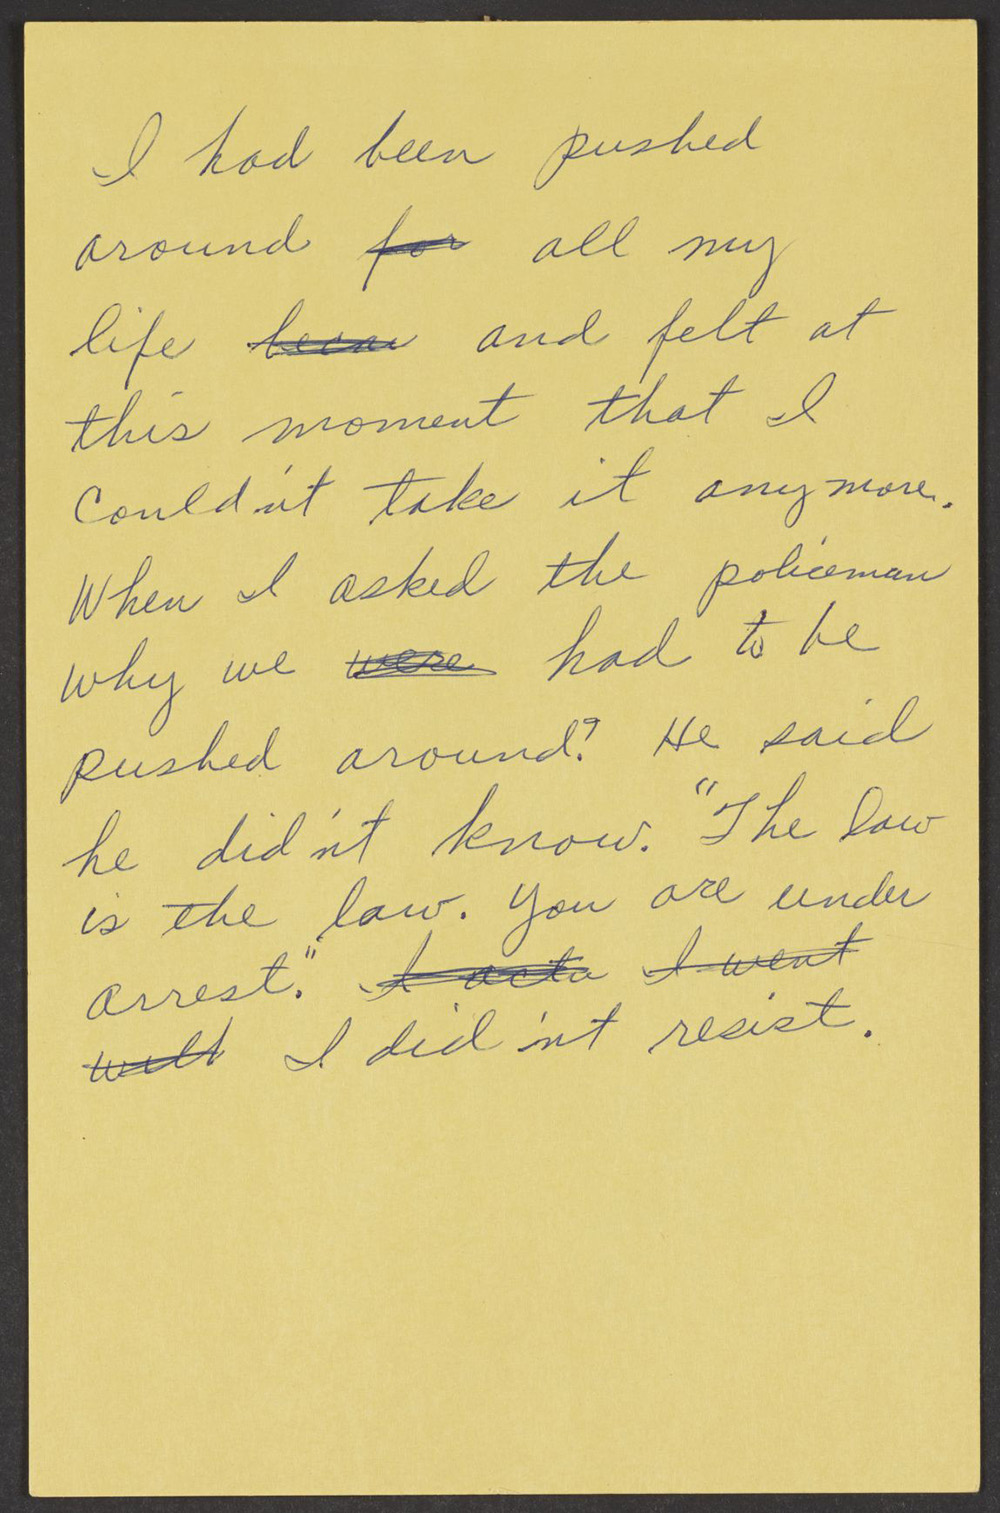 Account of Rosa Parks' arrest, c. 1958. Library of Congress, Prints and Photographs Division.